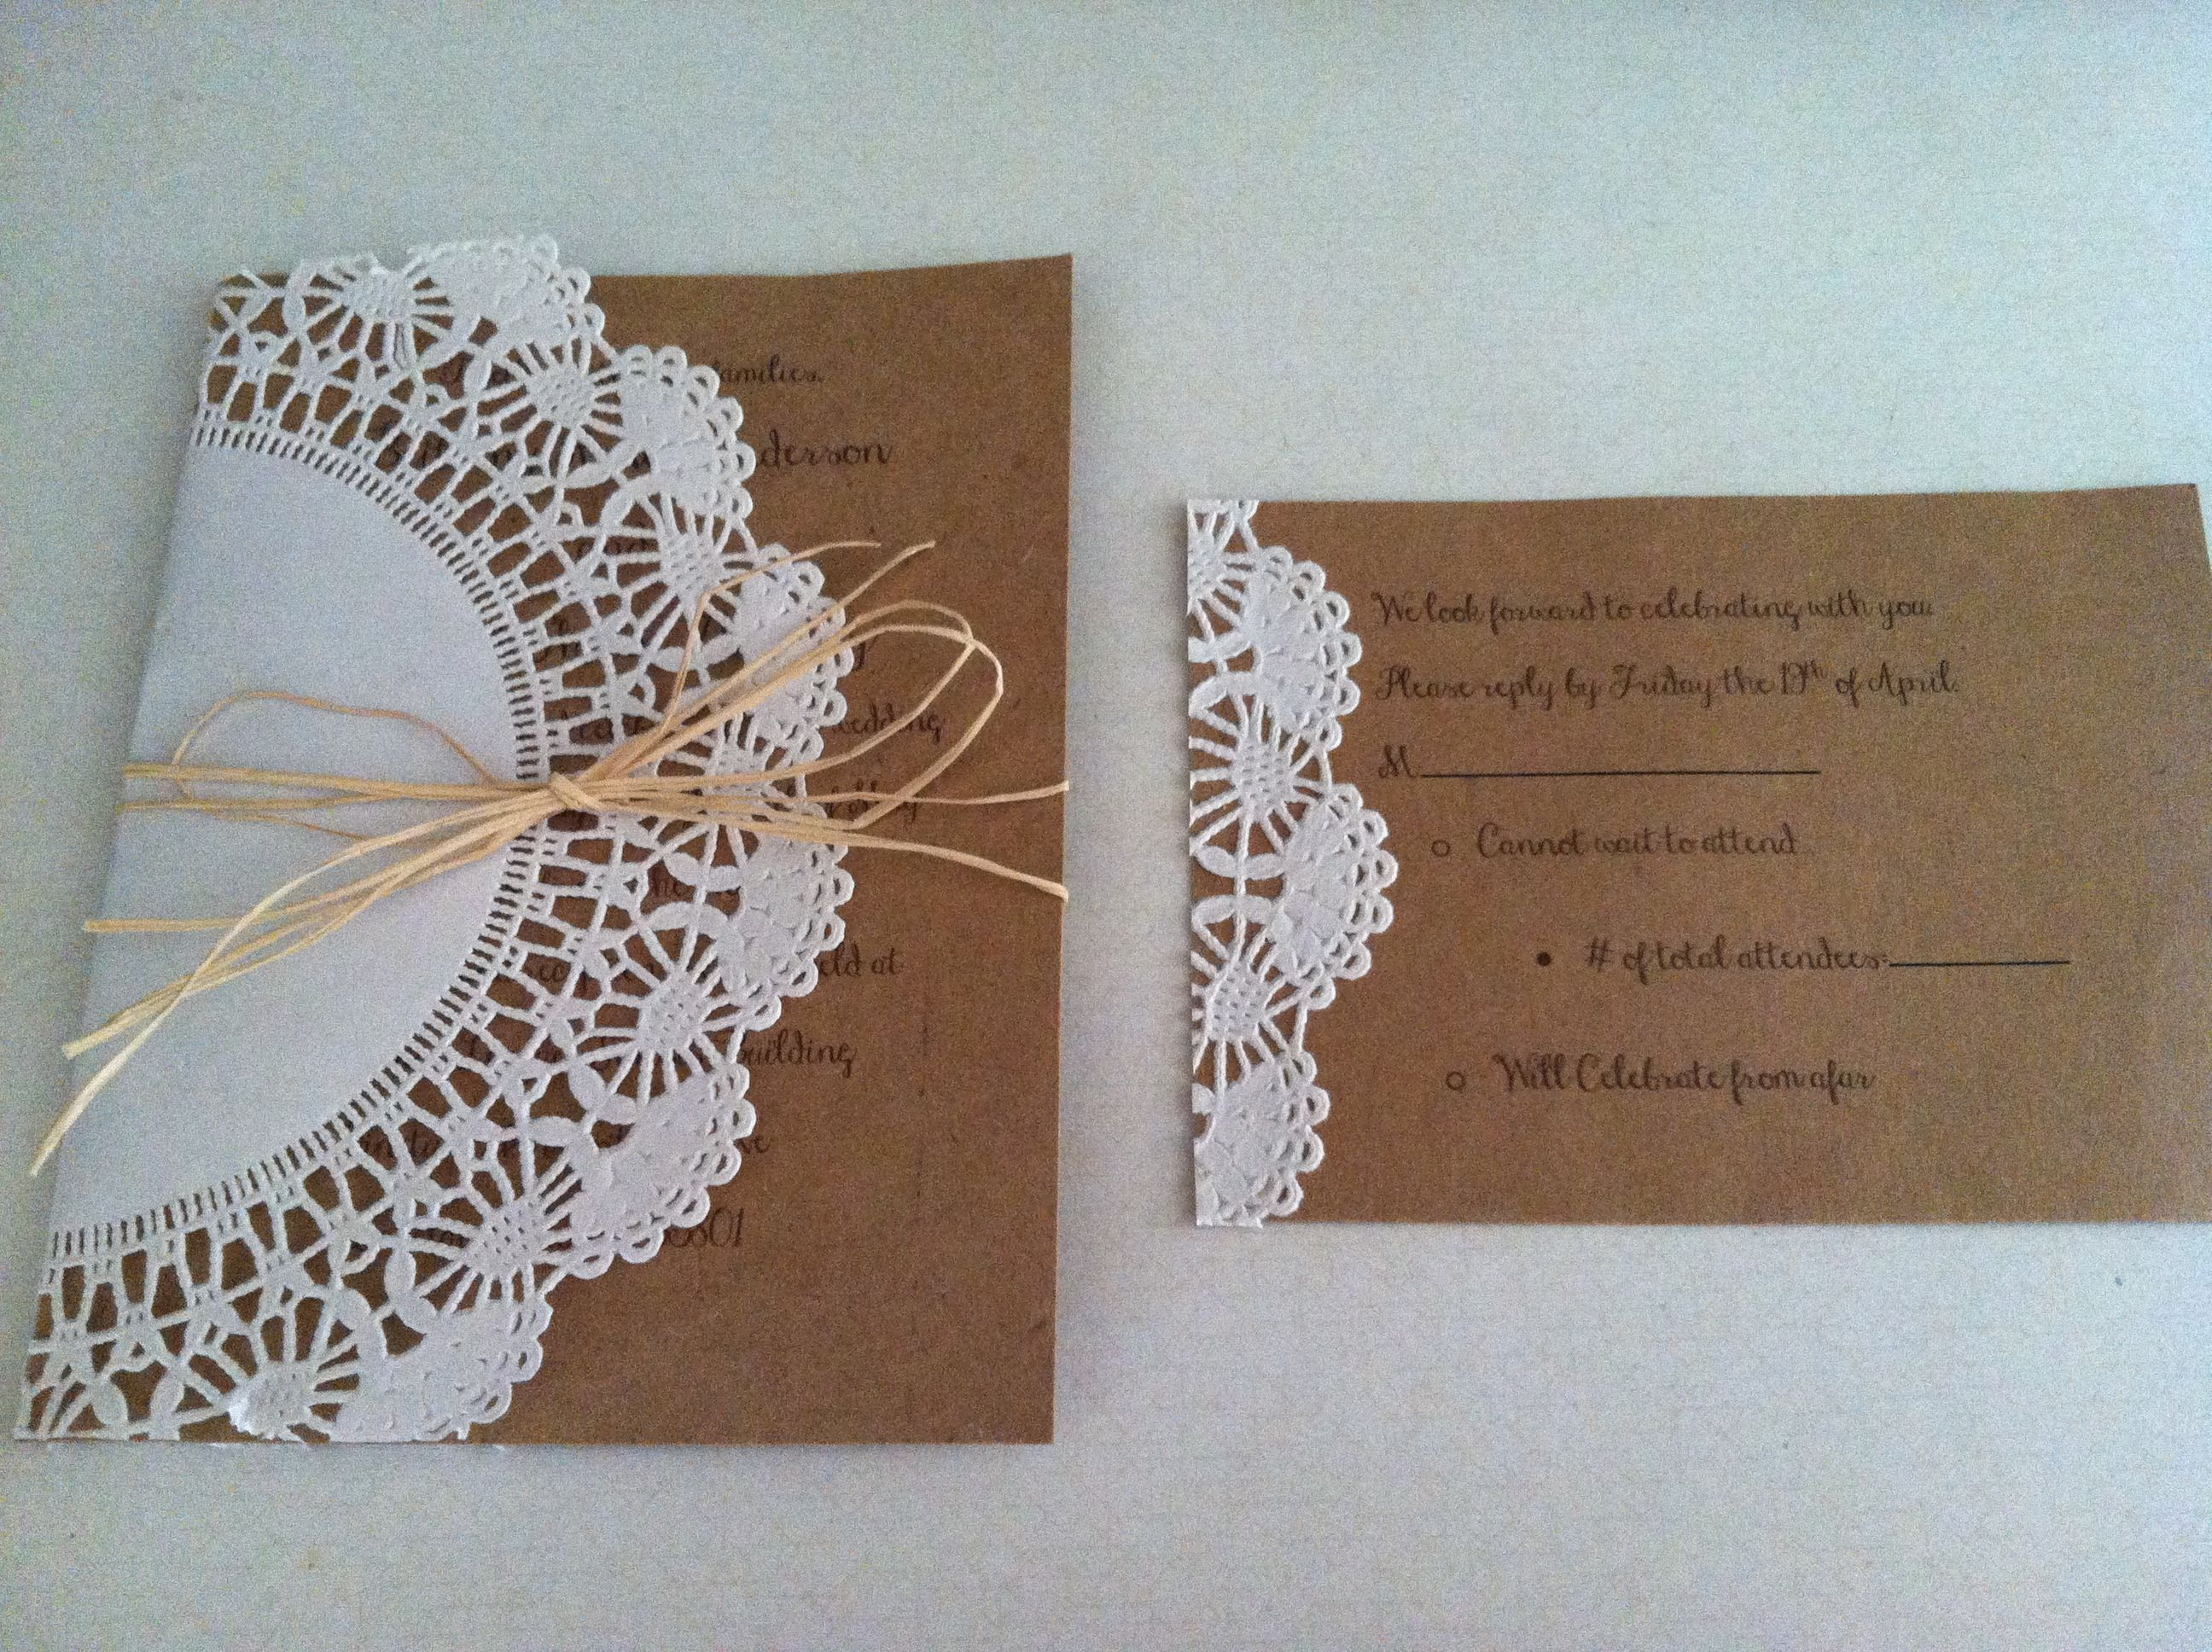 Invitation Wedding Card: DIY Wedding Invites: 5x7 Card Stock For Invite, 4x6 Card